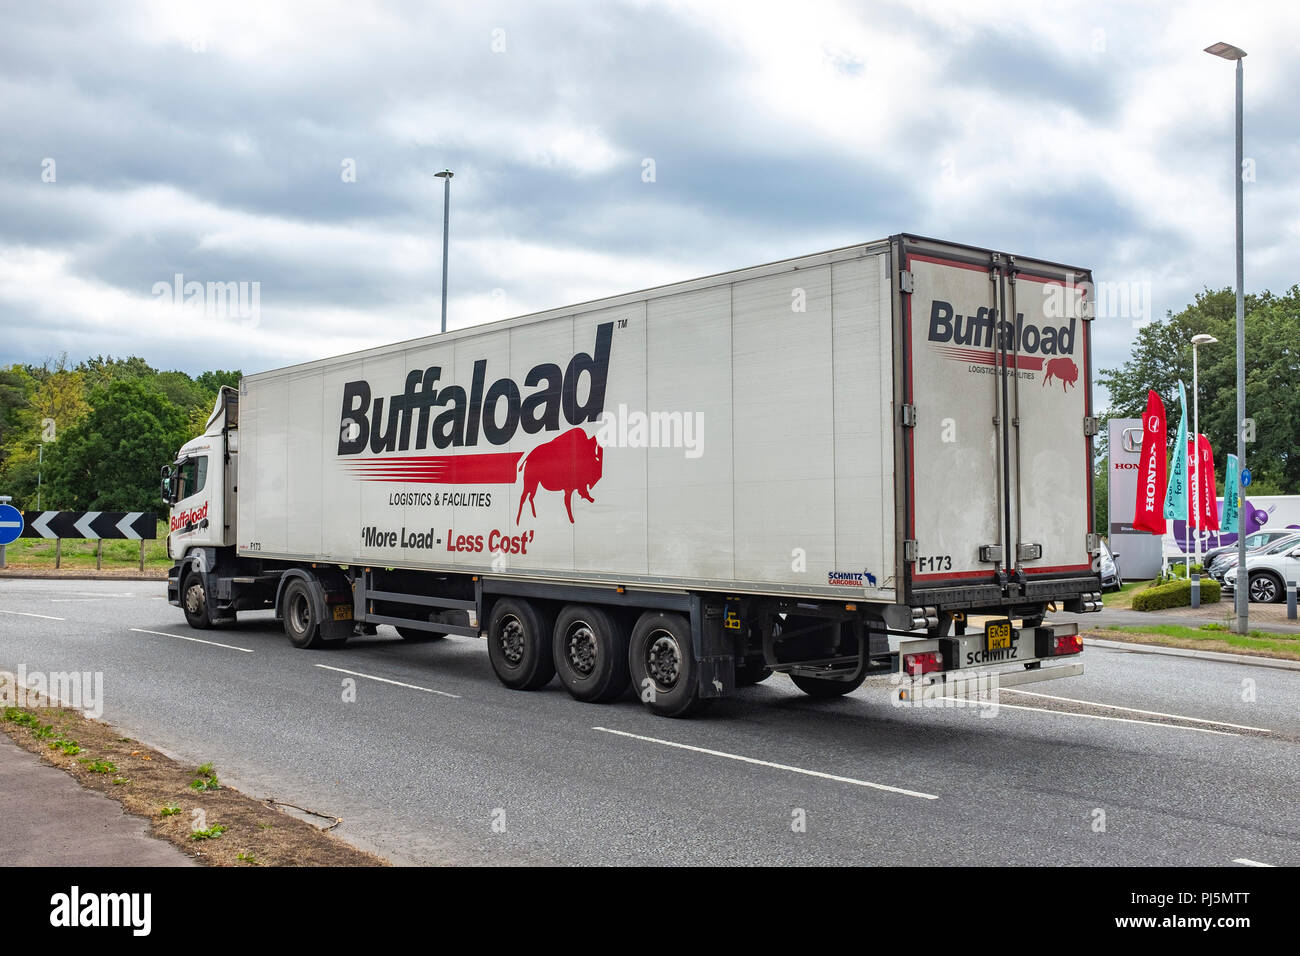 Logistica Buffaload autoarticolato in Cheshre Crewe Regno Unito Immagini Stock